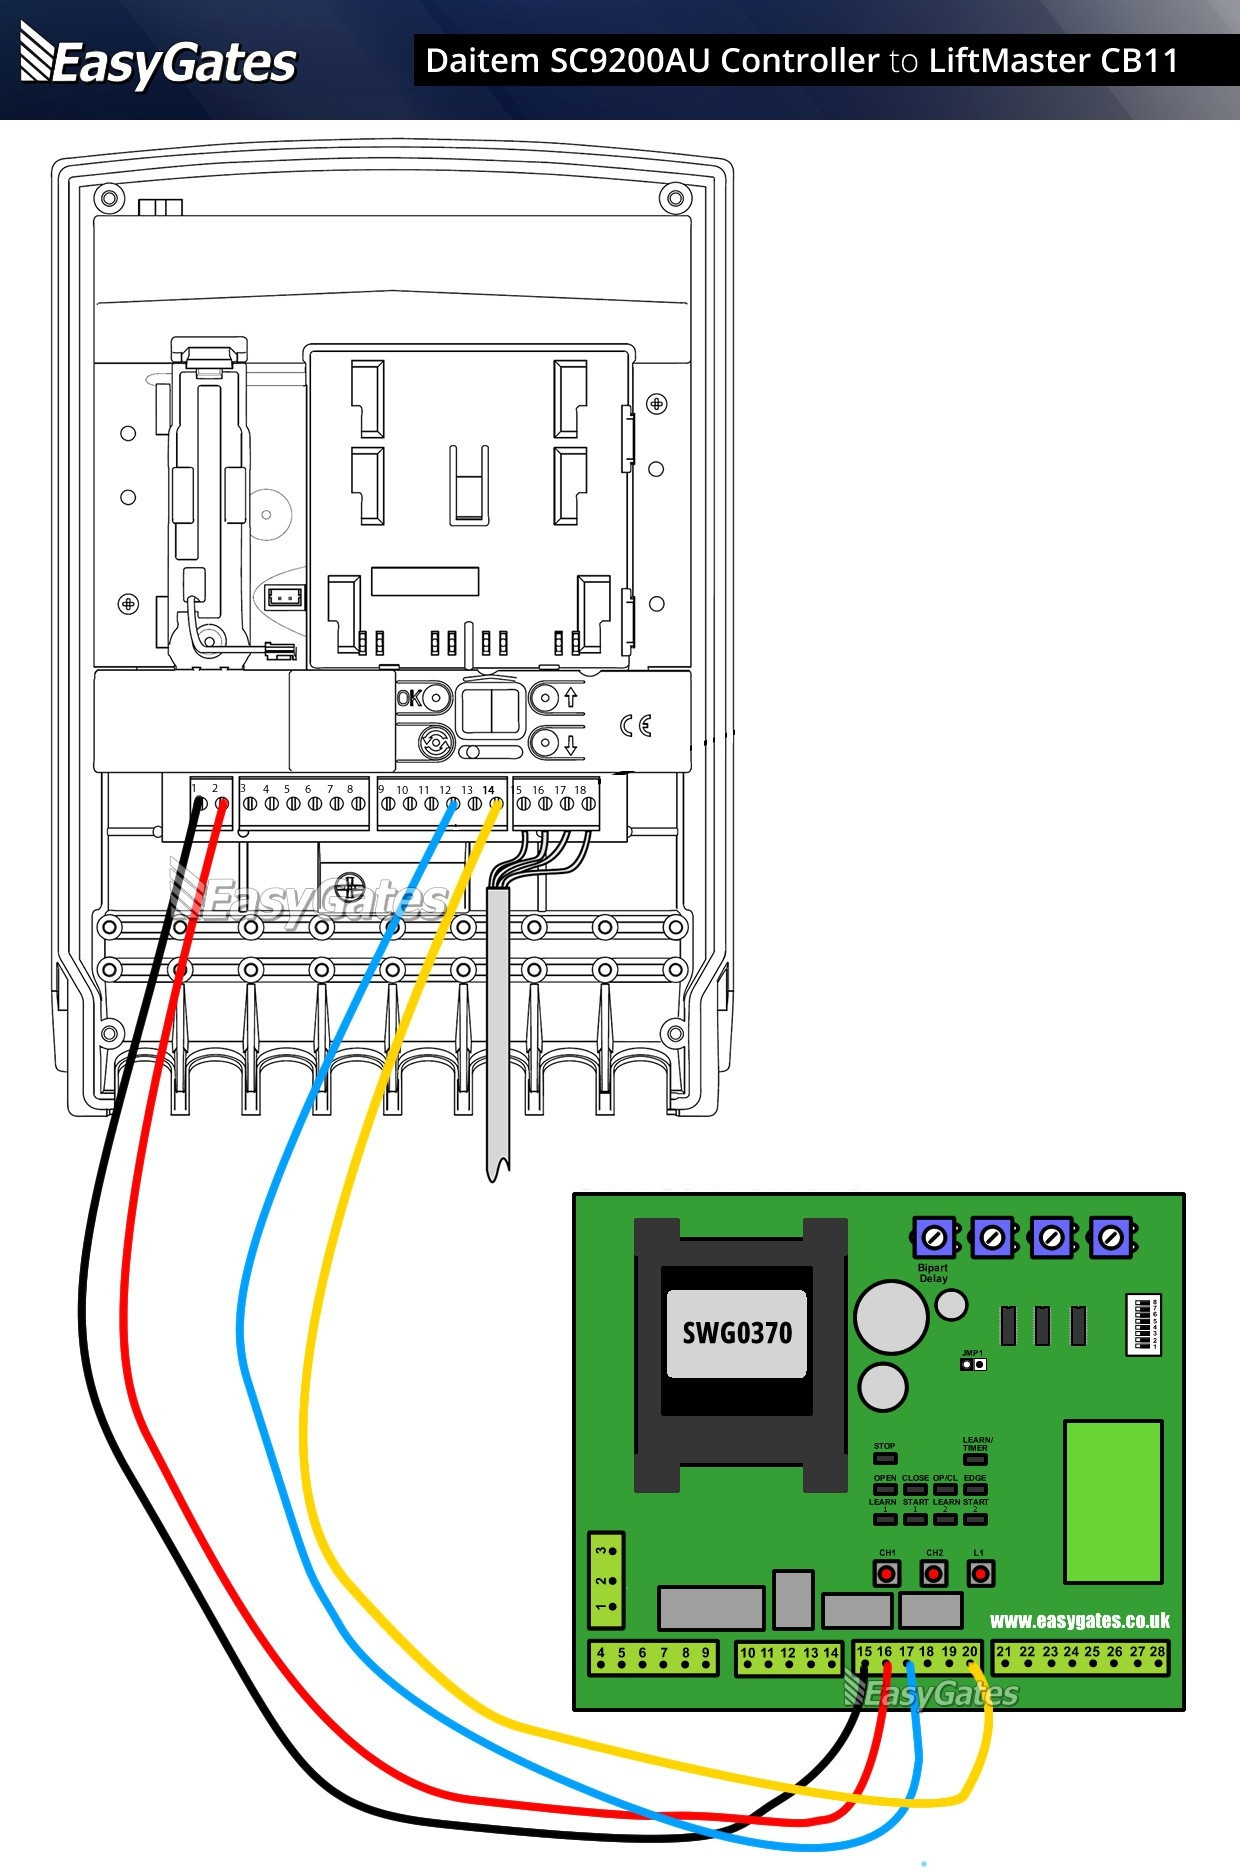 Wiring Diagram For Liftmaster Garage Door Opener